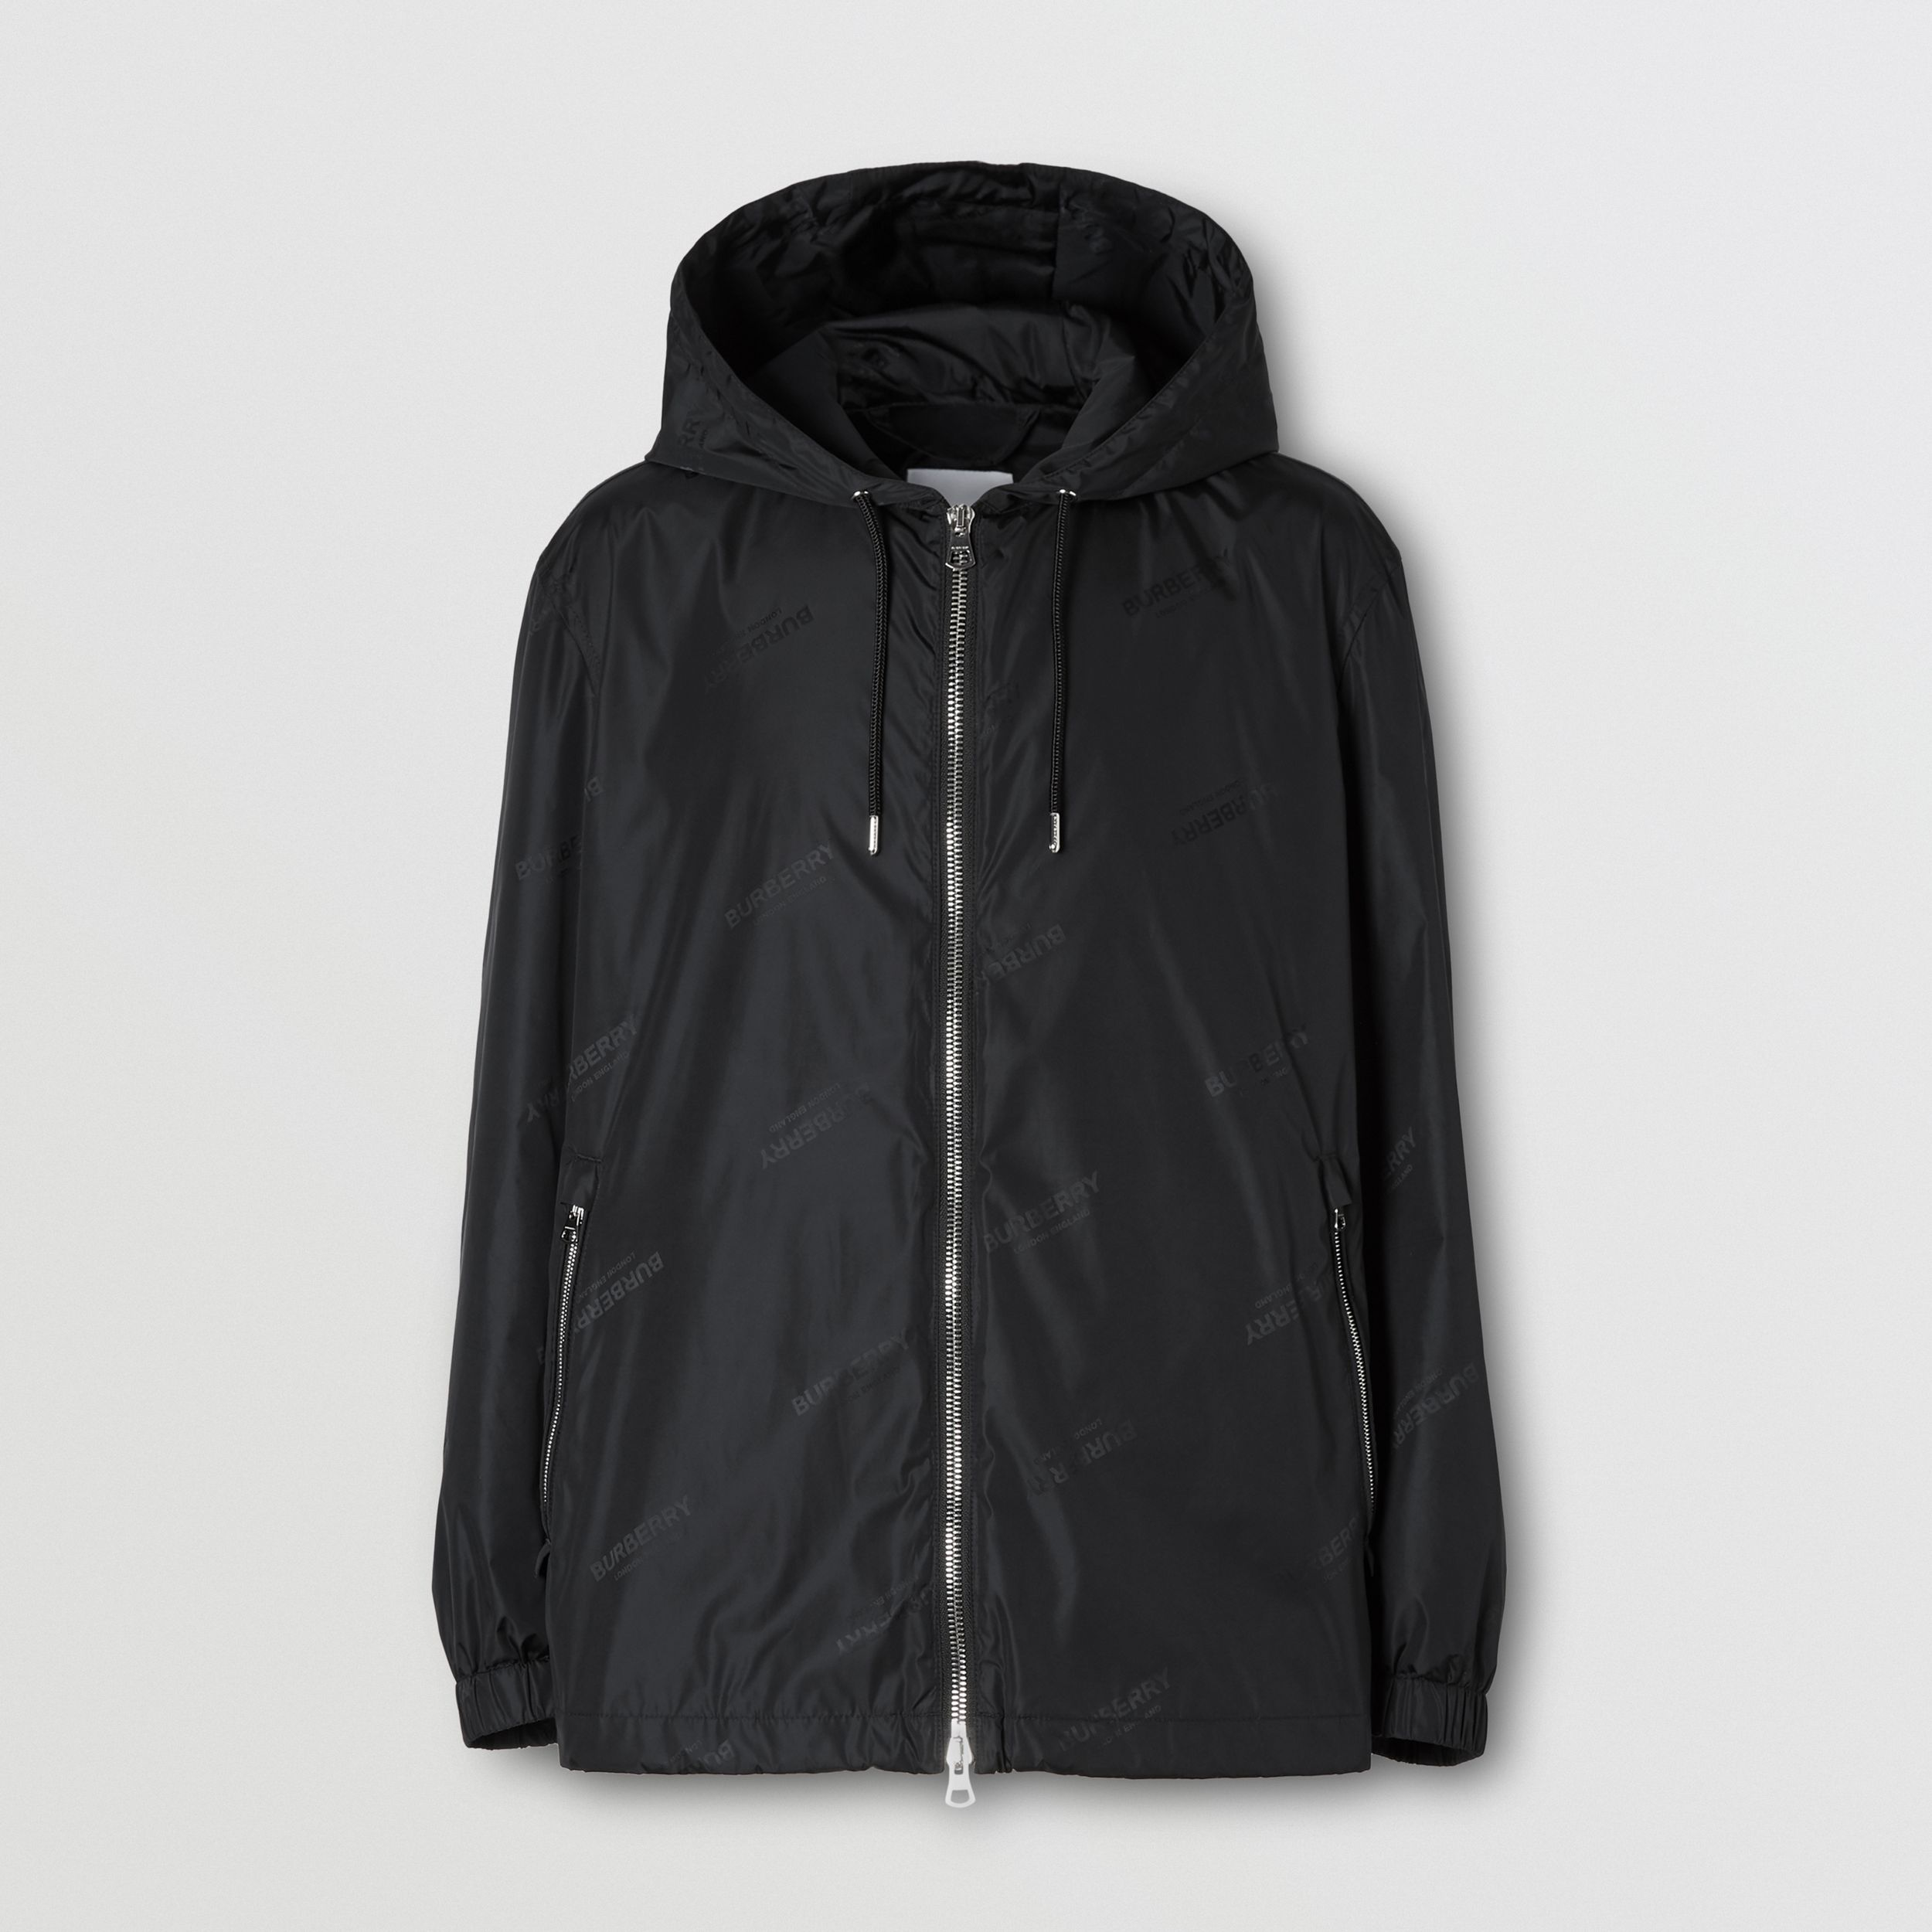 Logo Jacquard ECONYL® Hooded Jacket in Black - Men | Burberry - 4